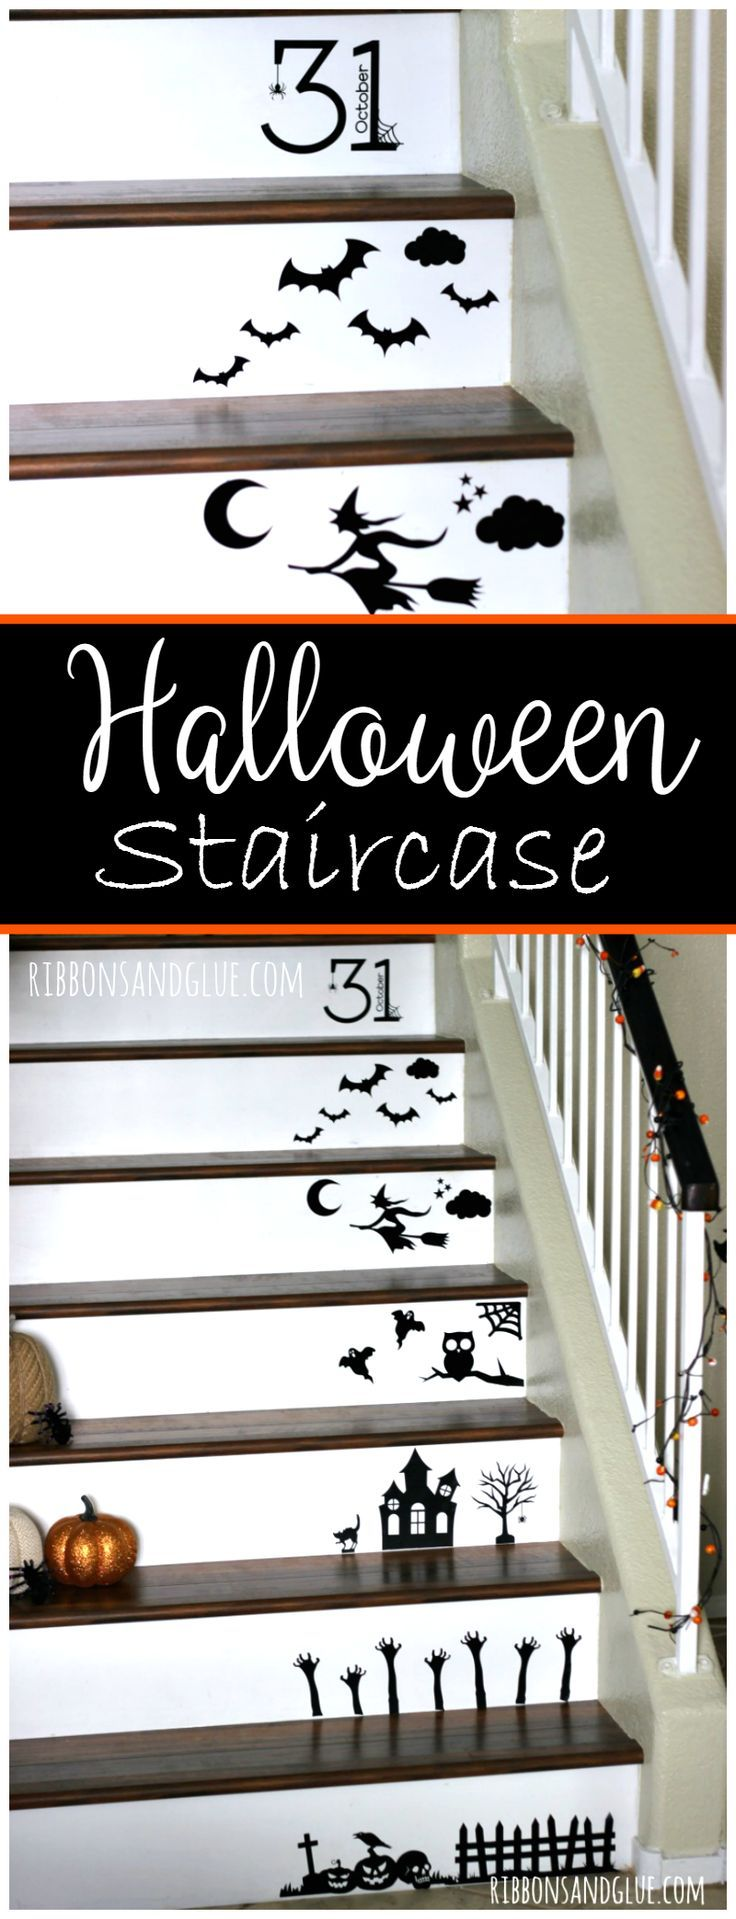 Create a Halloween Staircase by adhering black vinyl Halloween shapes down the stairs. Easy Halloween Decor idea.